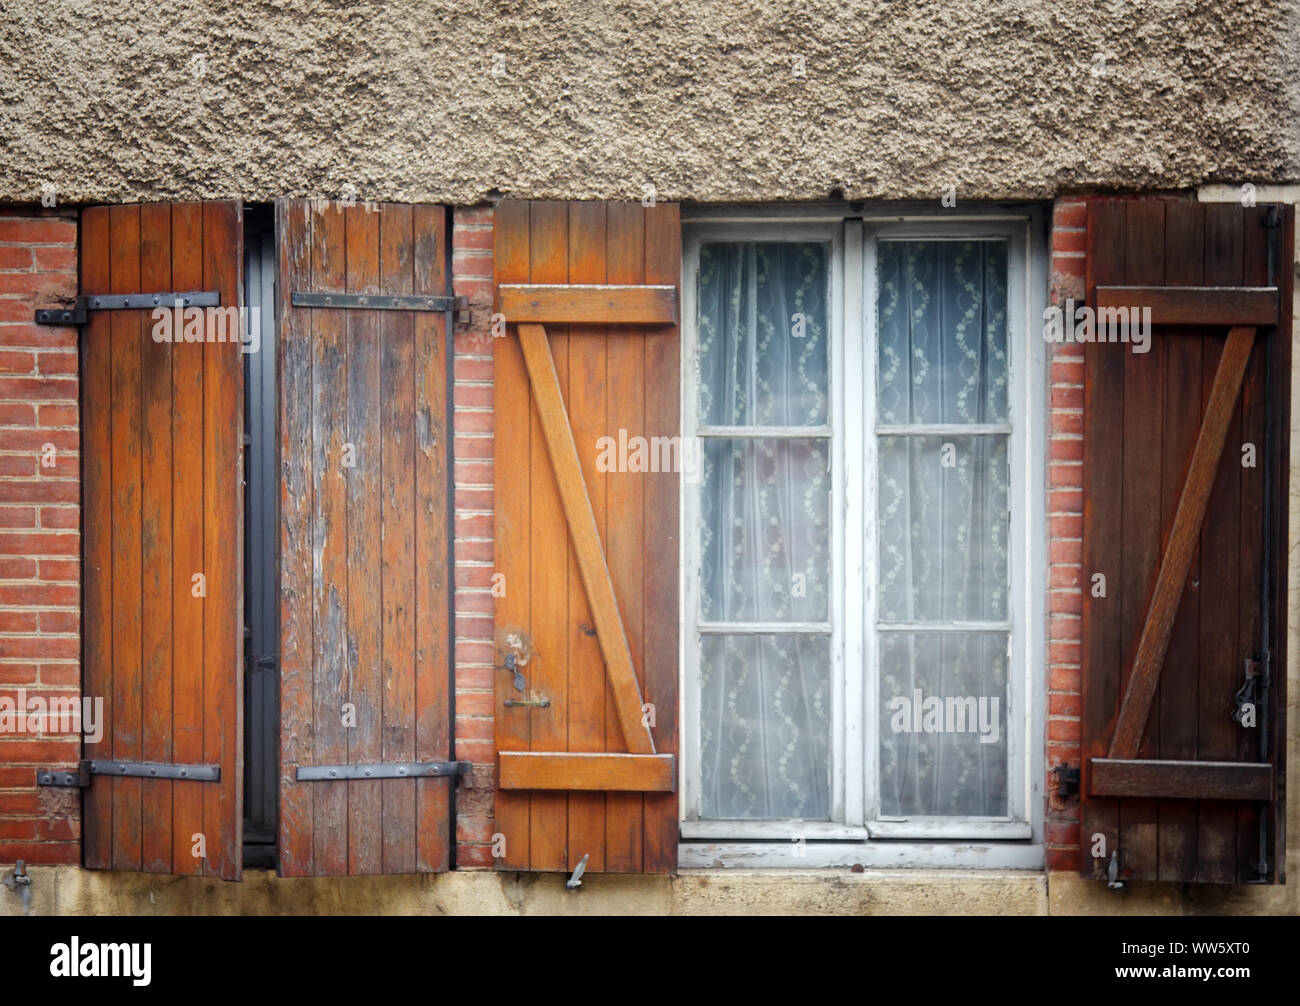 Windows And Shutters In The Small Houses Of The Outskirts Of